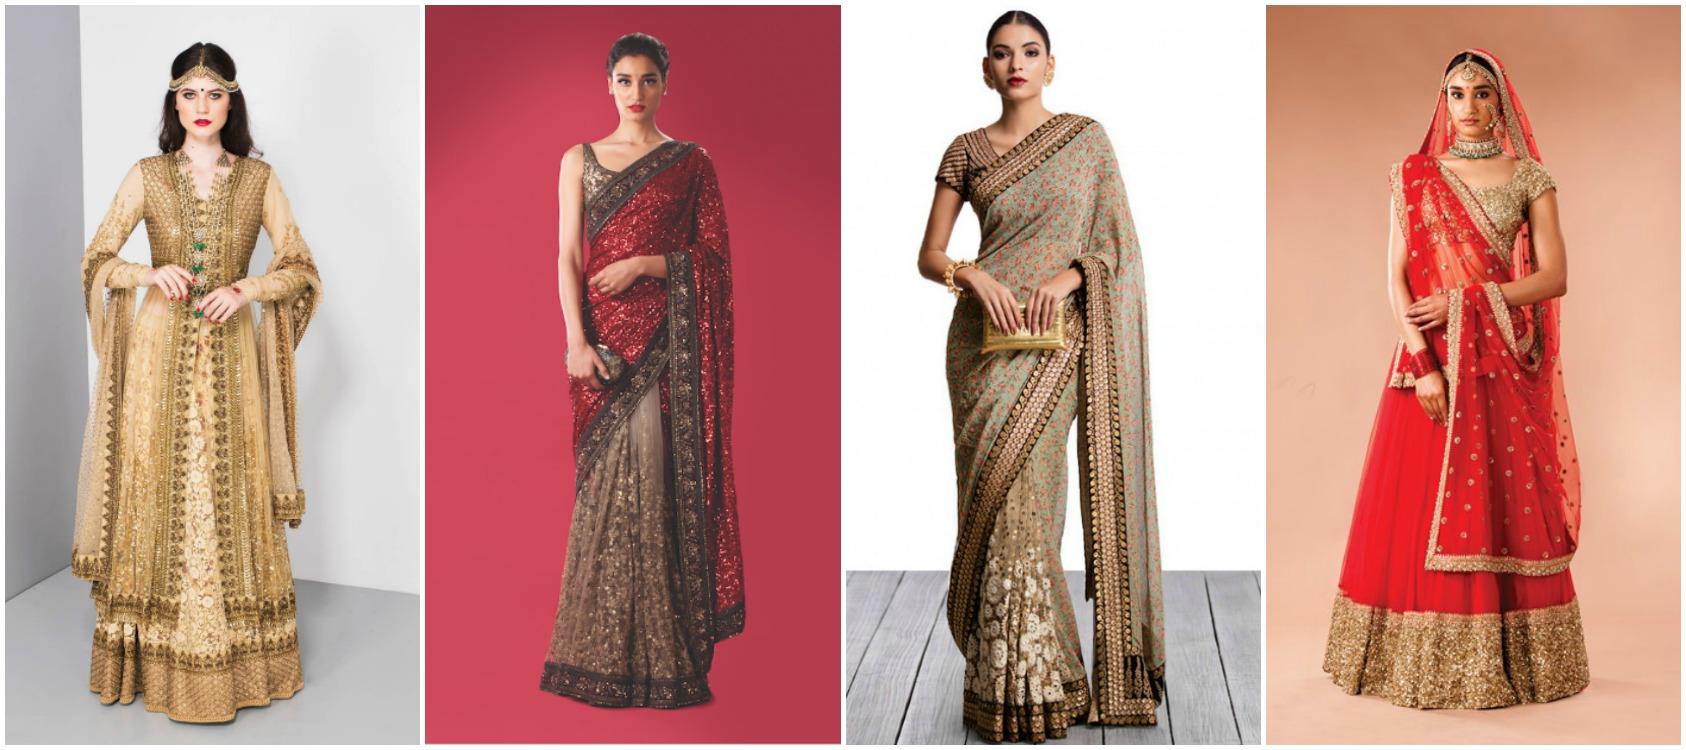 What do Sabyasachi outfits really cost? - Frugal2Fab Sabyasachi Bridal Collection Price Range